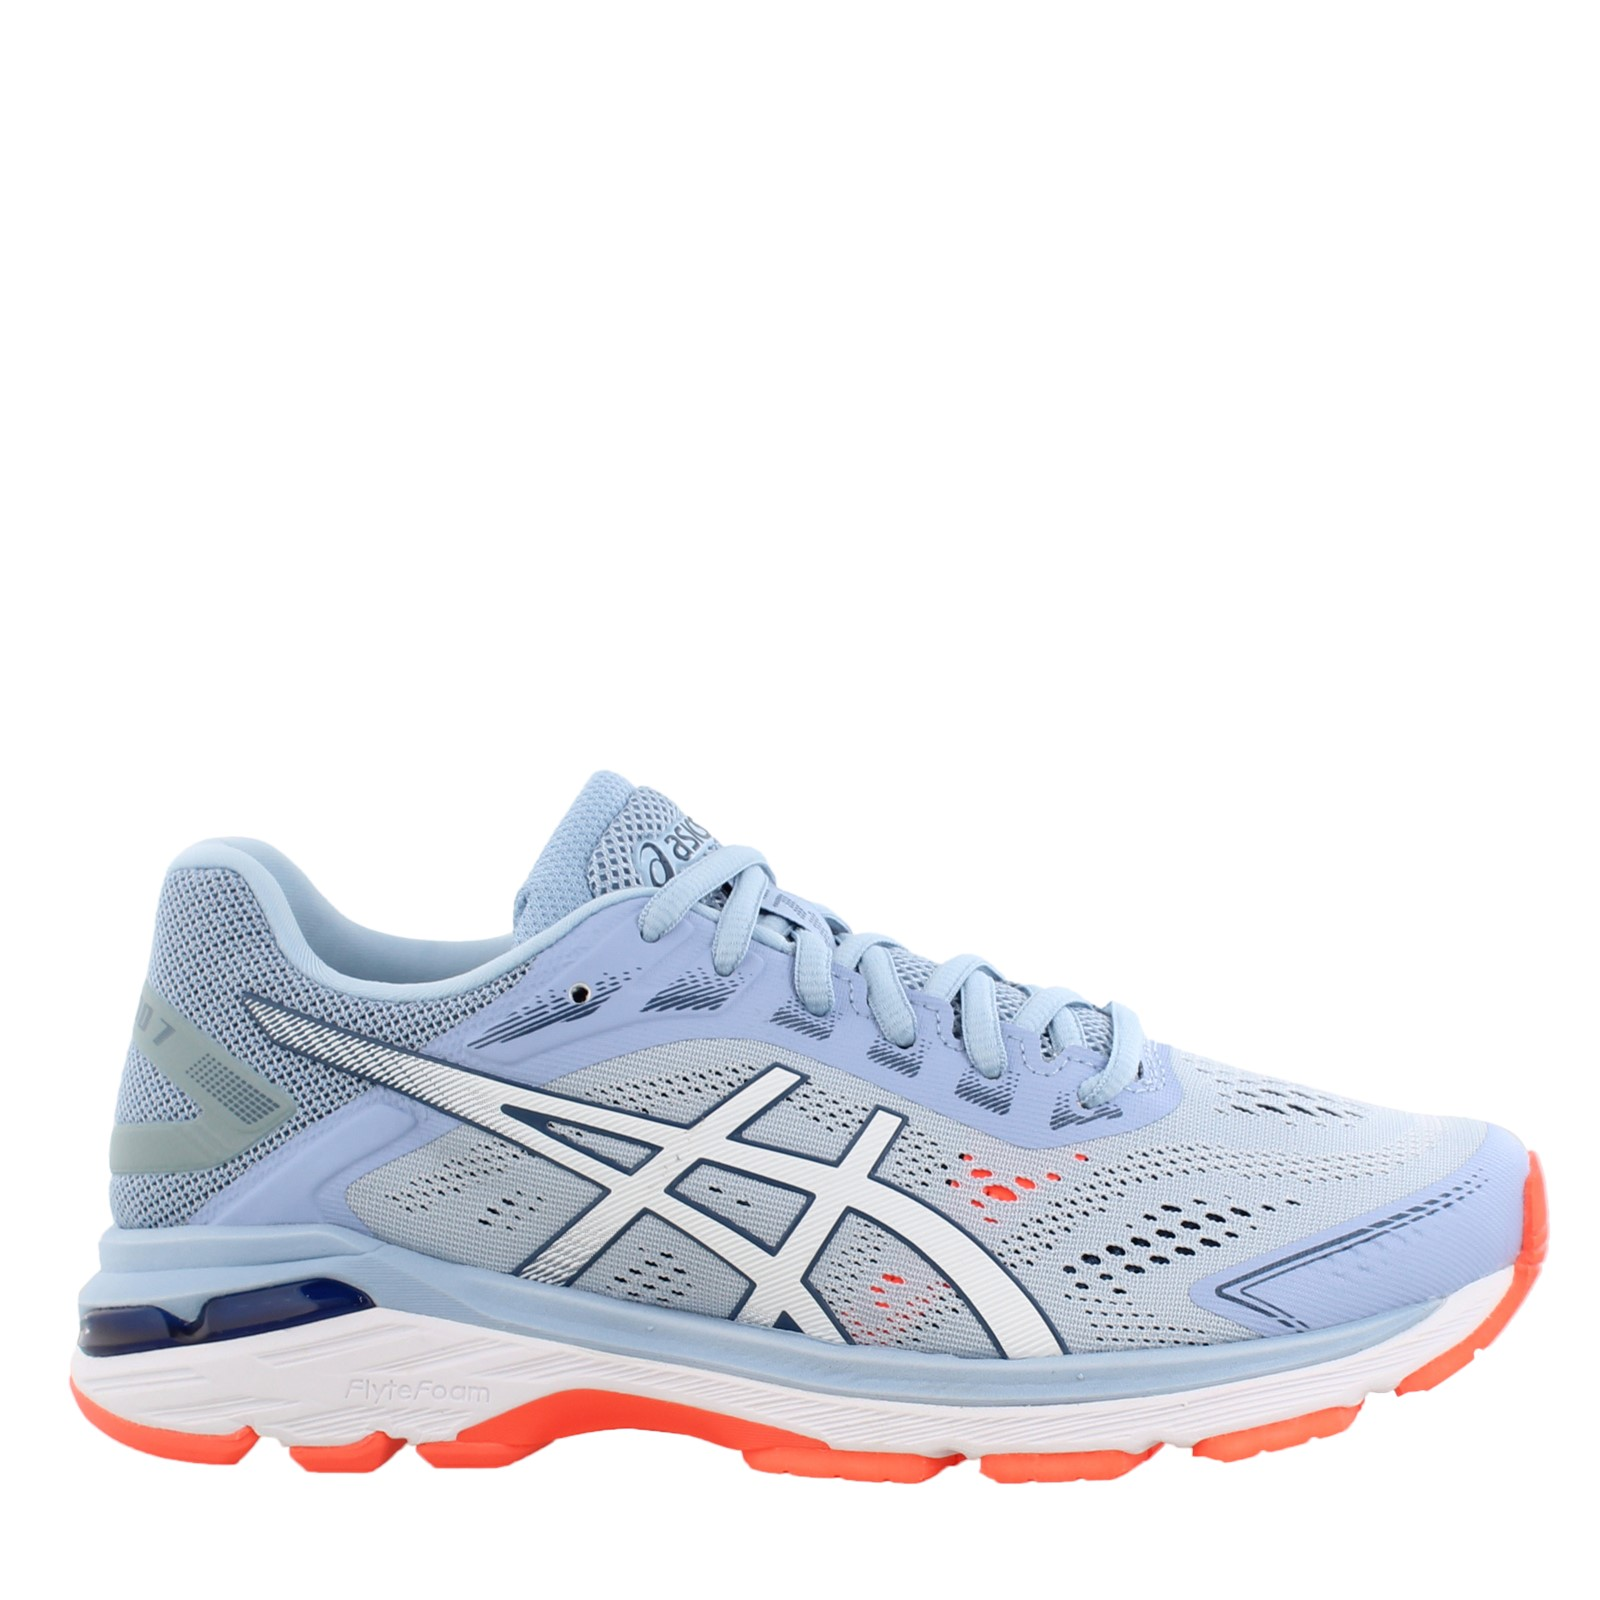 Women's Asics, GT 2000 7 Running Sneakers